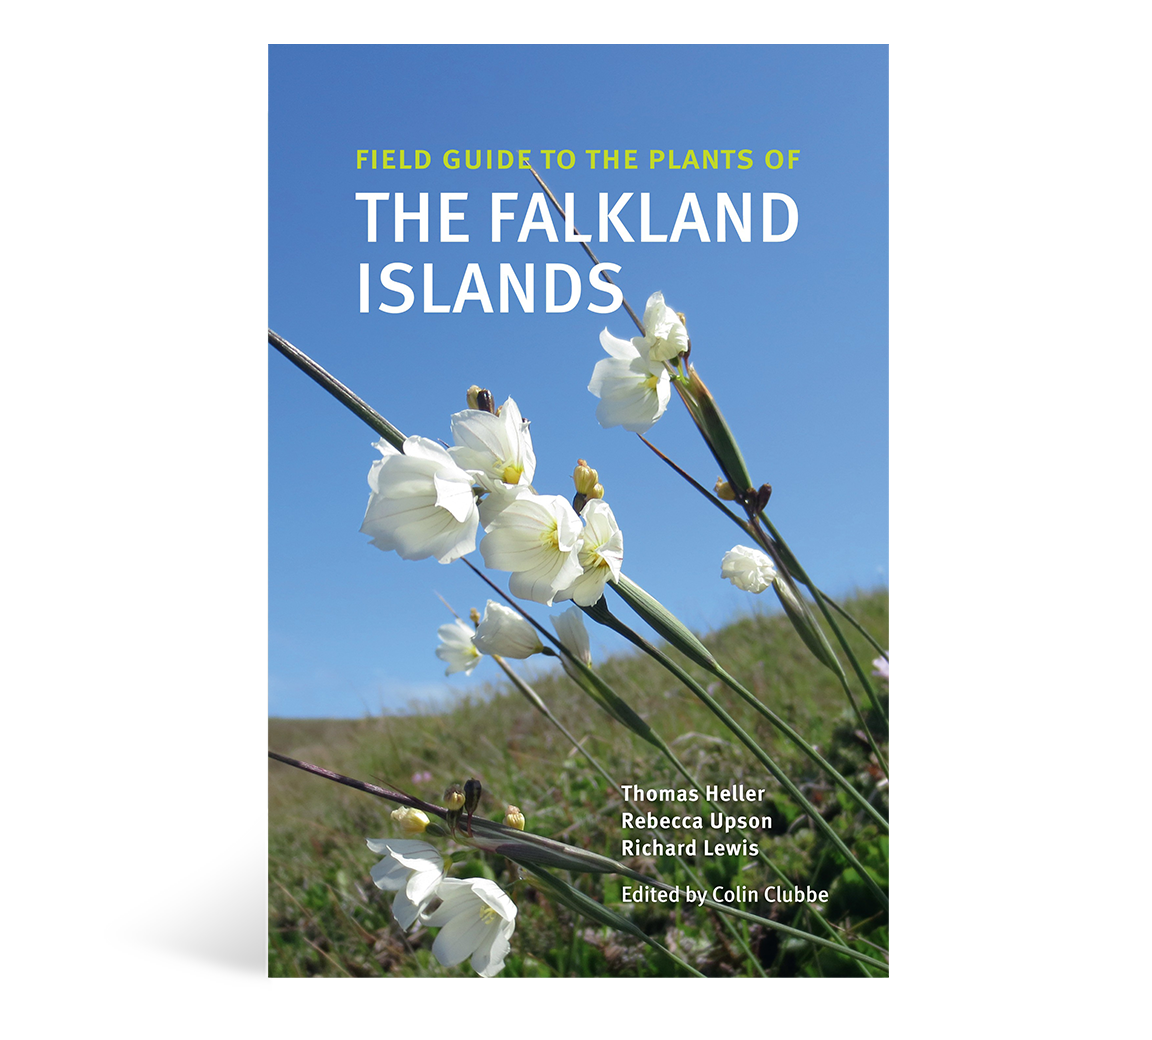 field-guide-to-the-plants-of-the-falkland-islands